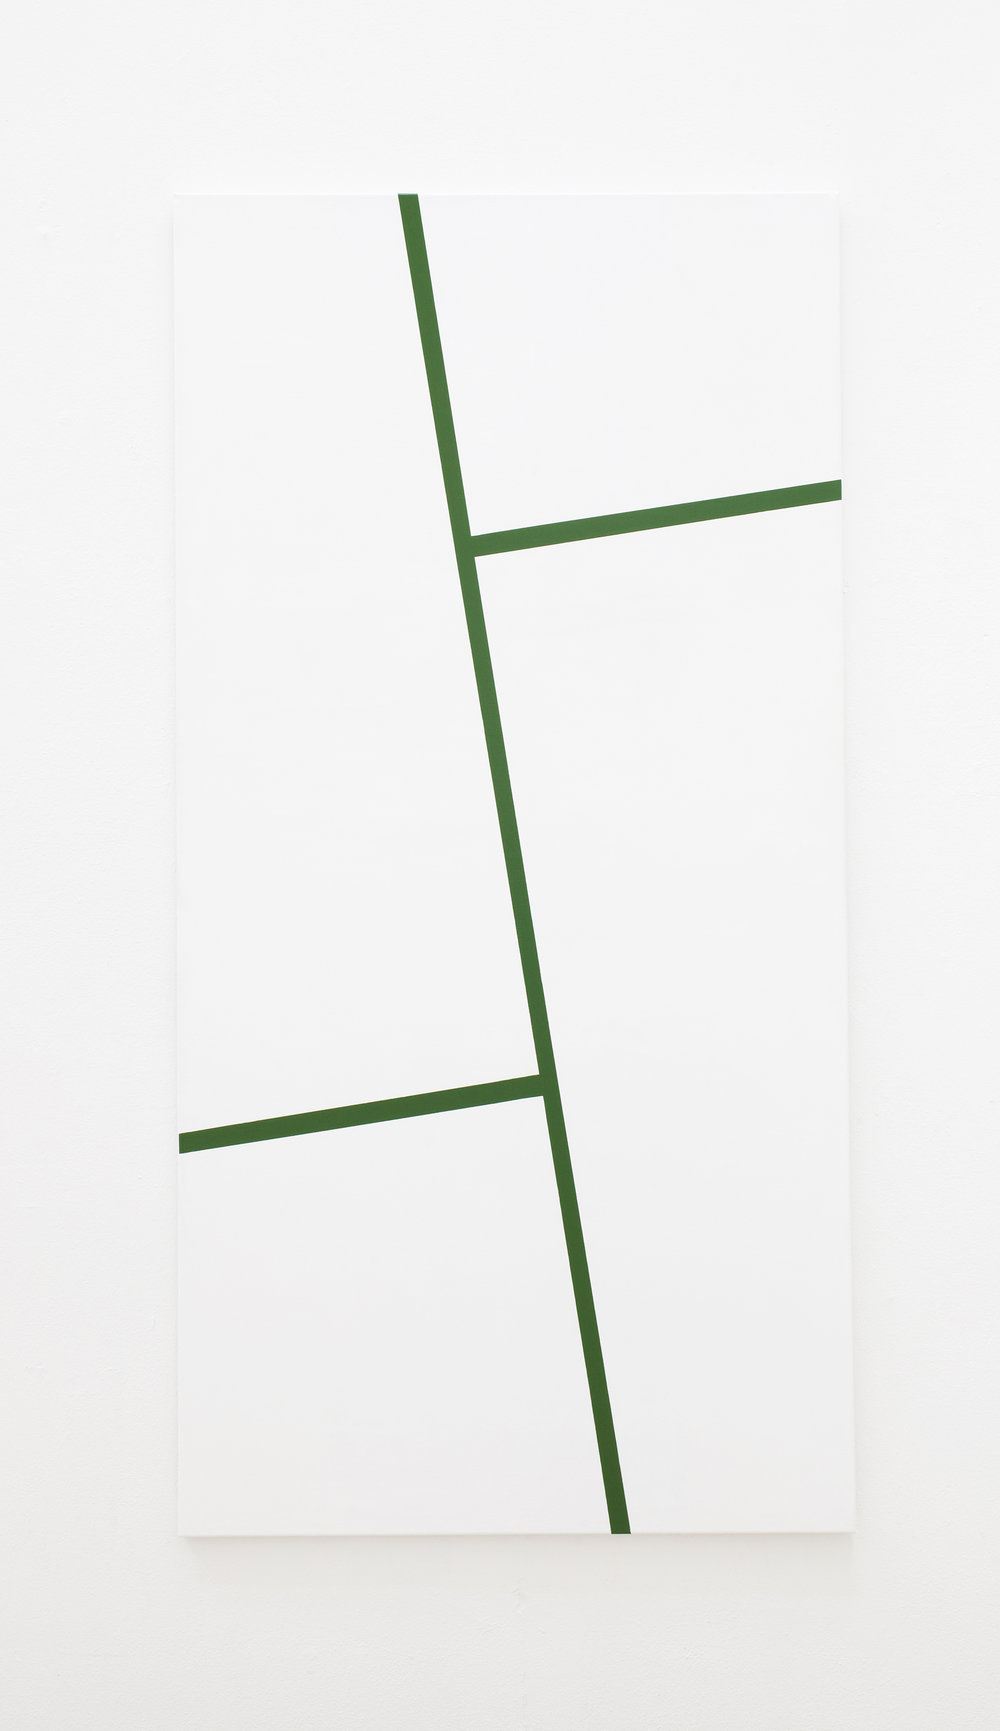 Bamboo, 2010, lacquer on canvas, 100 x 200 cm